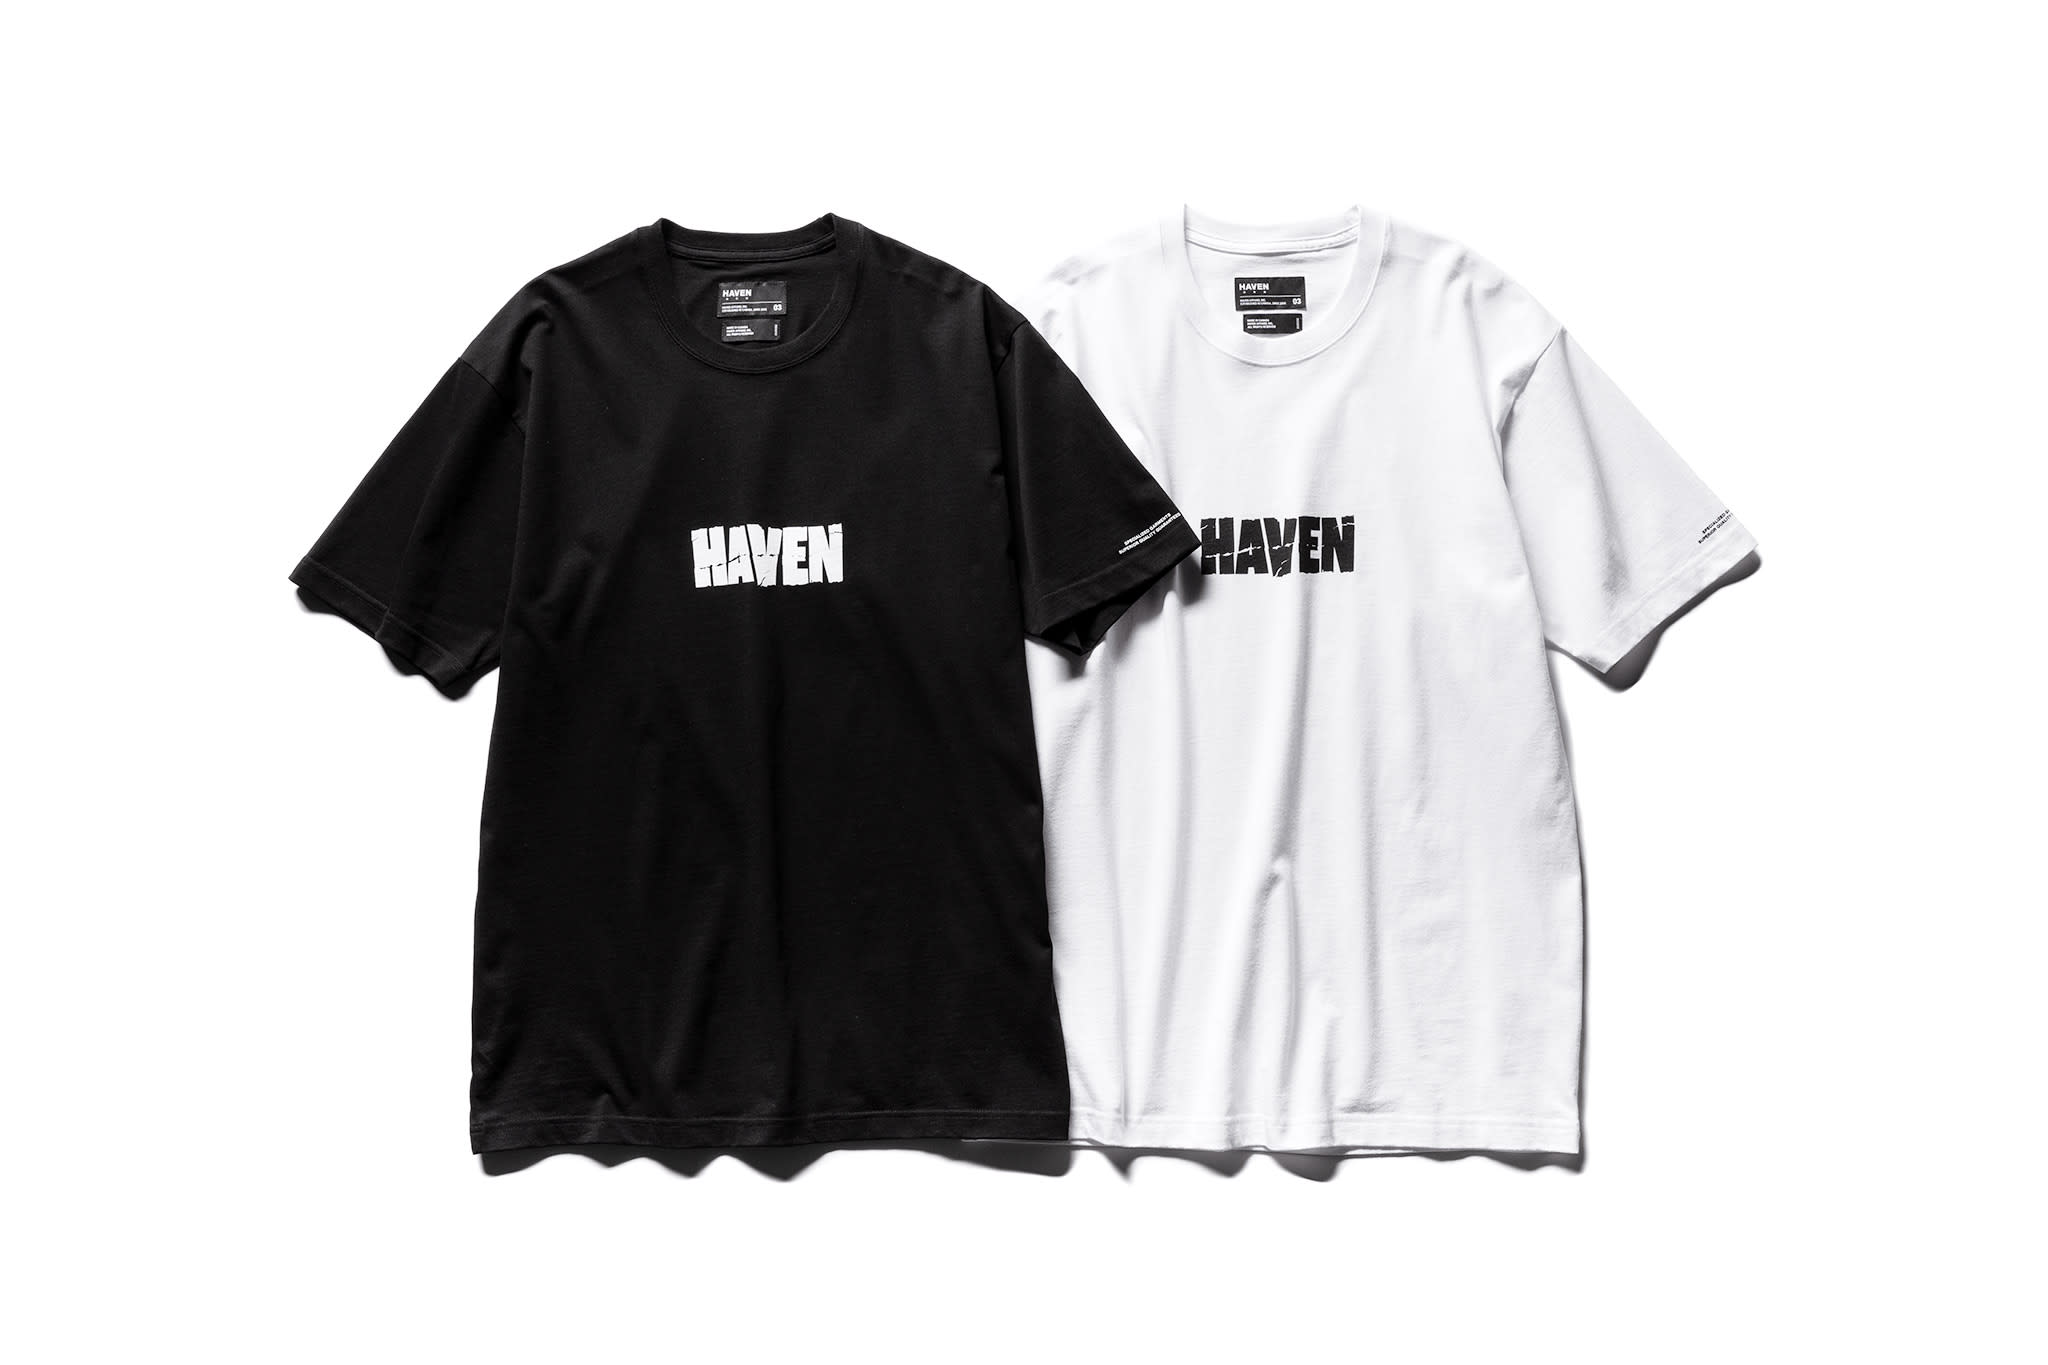 HAVEN SS20 Delivery